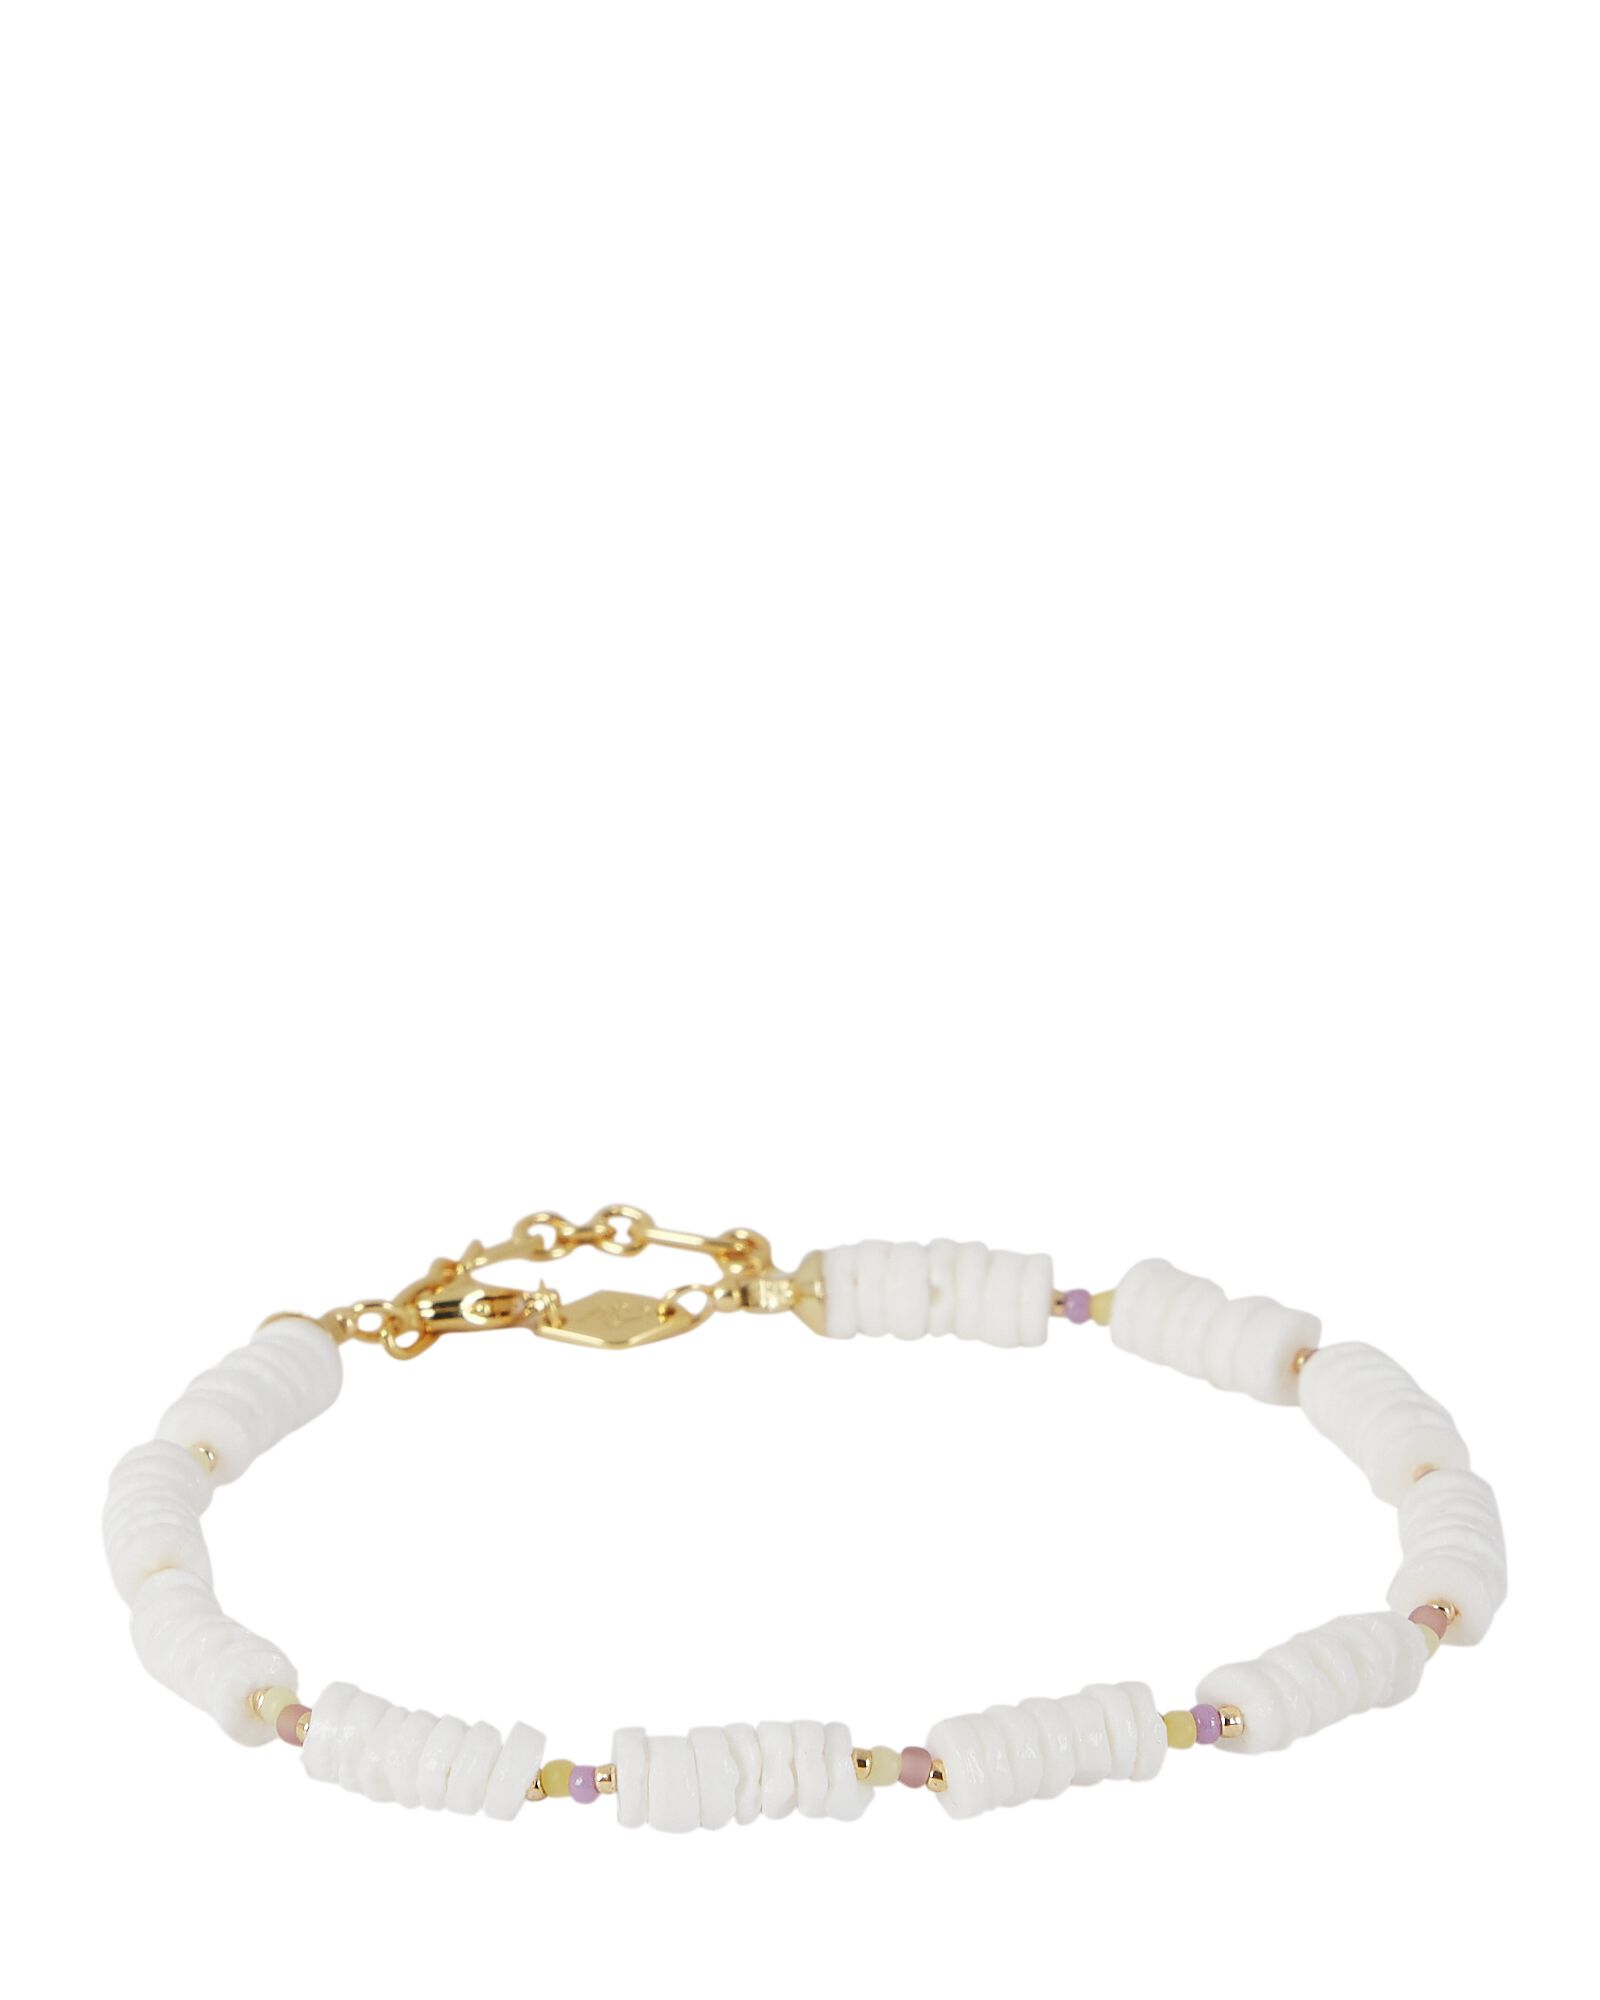 x TERRY Puka Shell Beaded Anklet, WHITE, hi-res